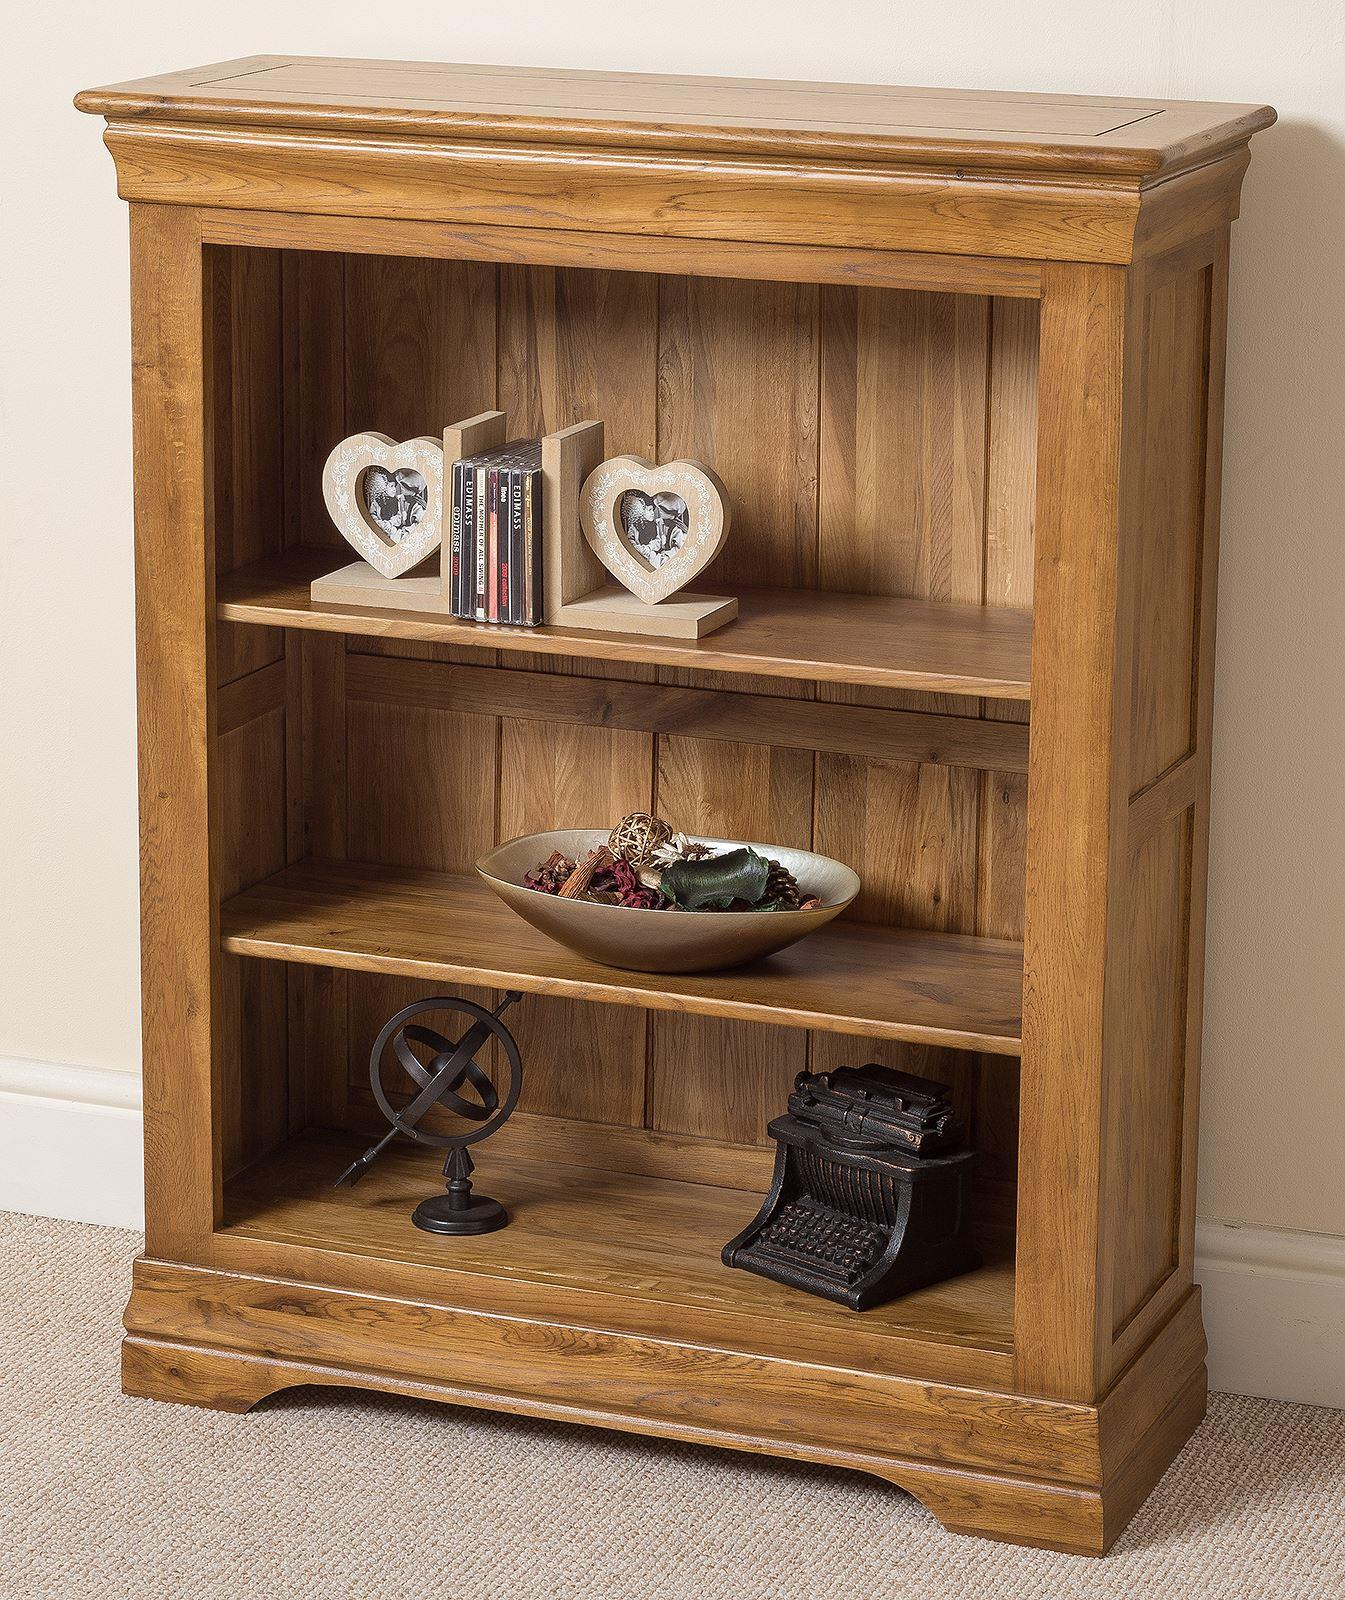 Cheap Prices On Furniture: Compare Furniture Prices For